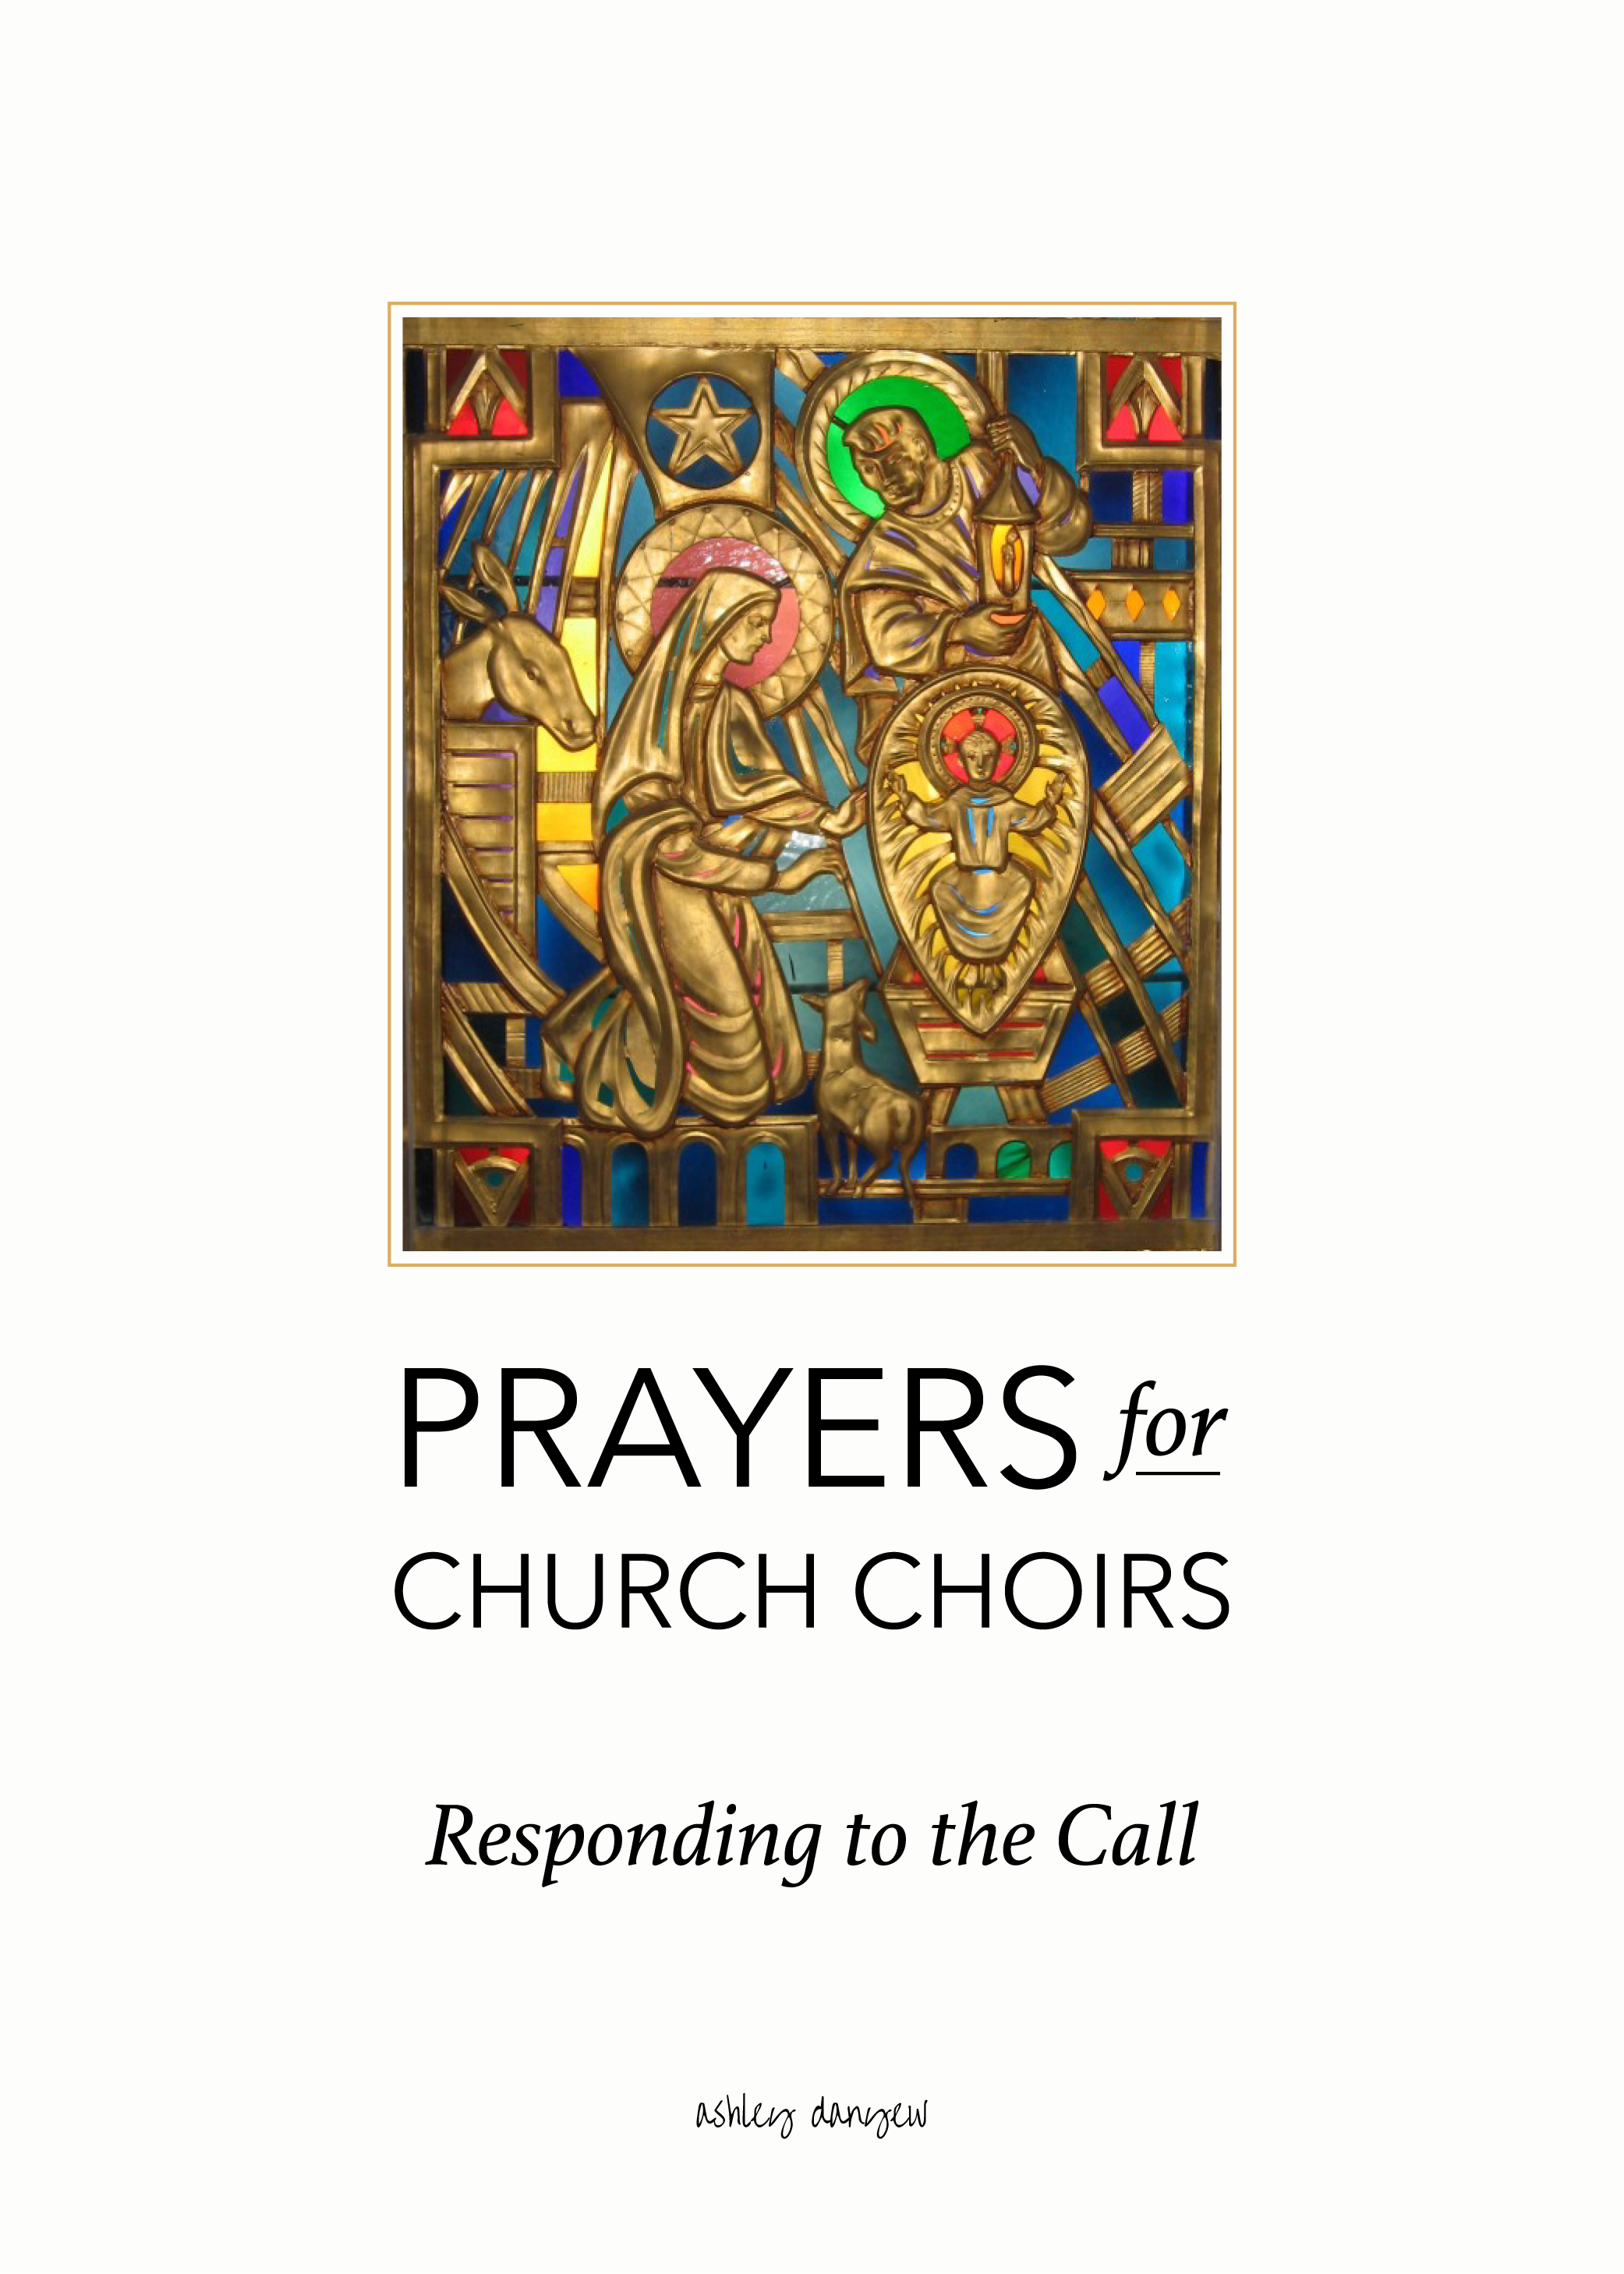 Copy of Prayers for Church Choirs: Responding to the Call